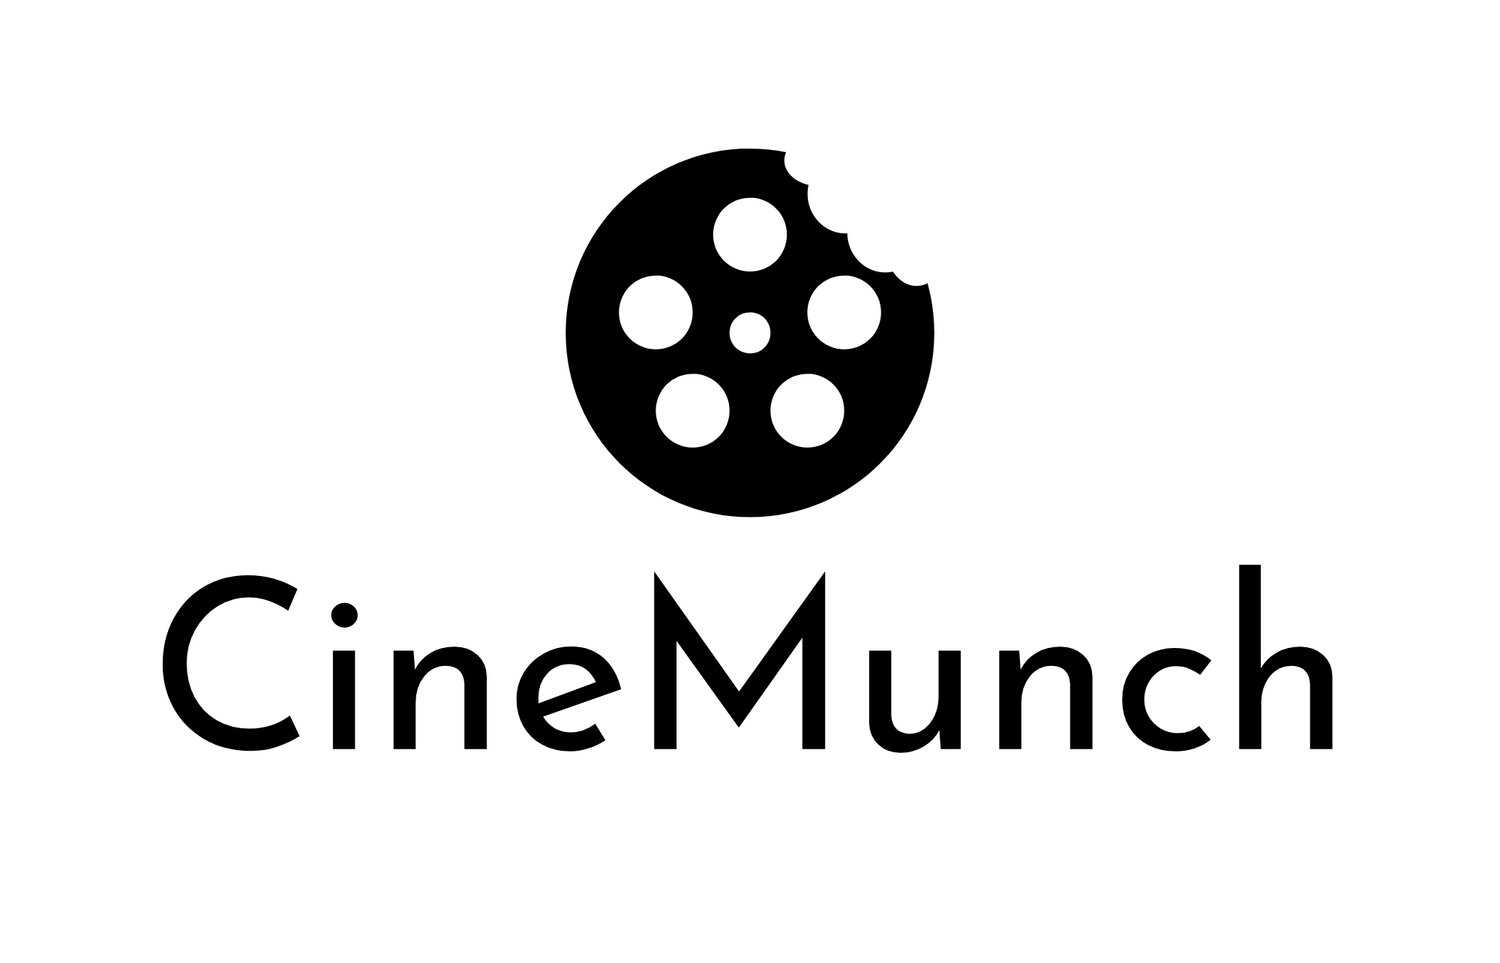 CineMunch